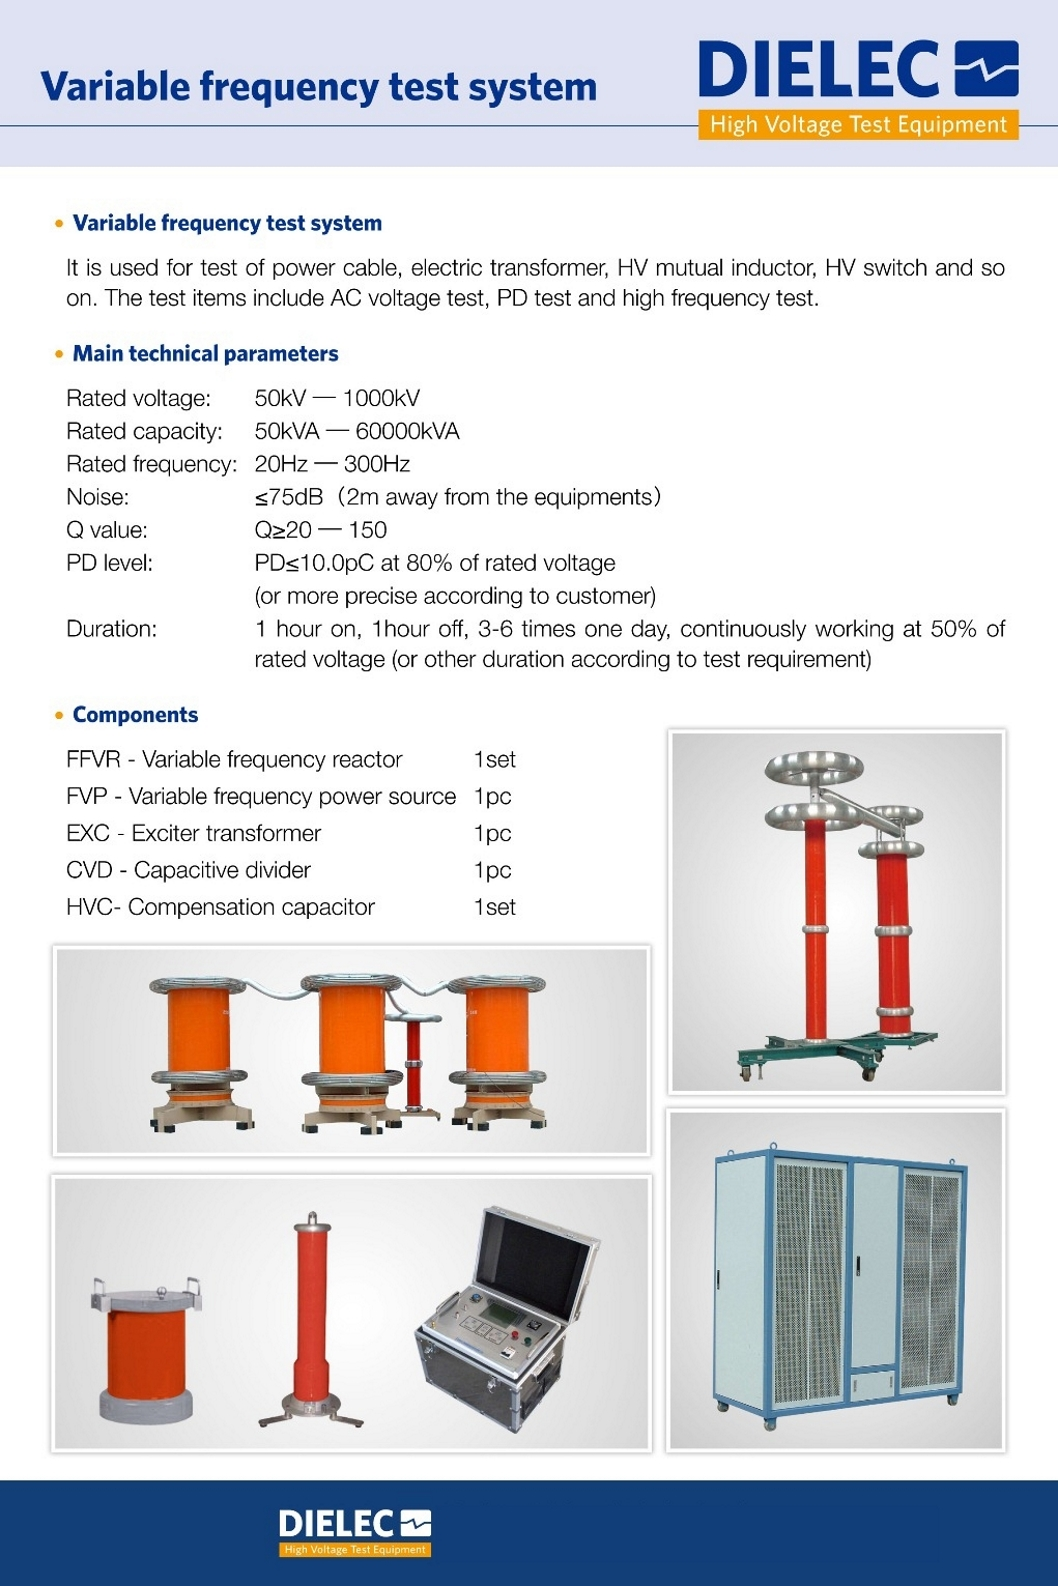 Dielec - Brochure - Variable Frequency Test System